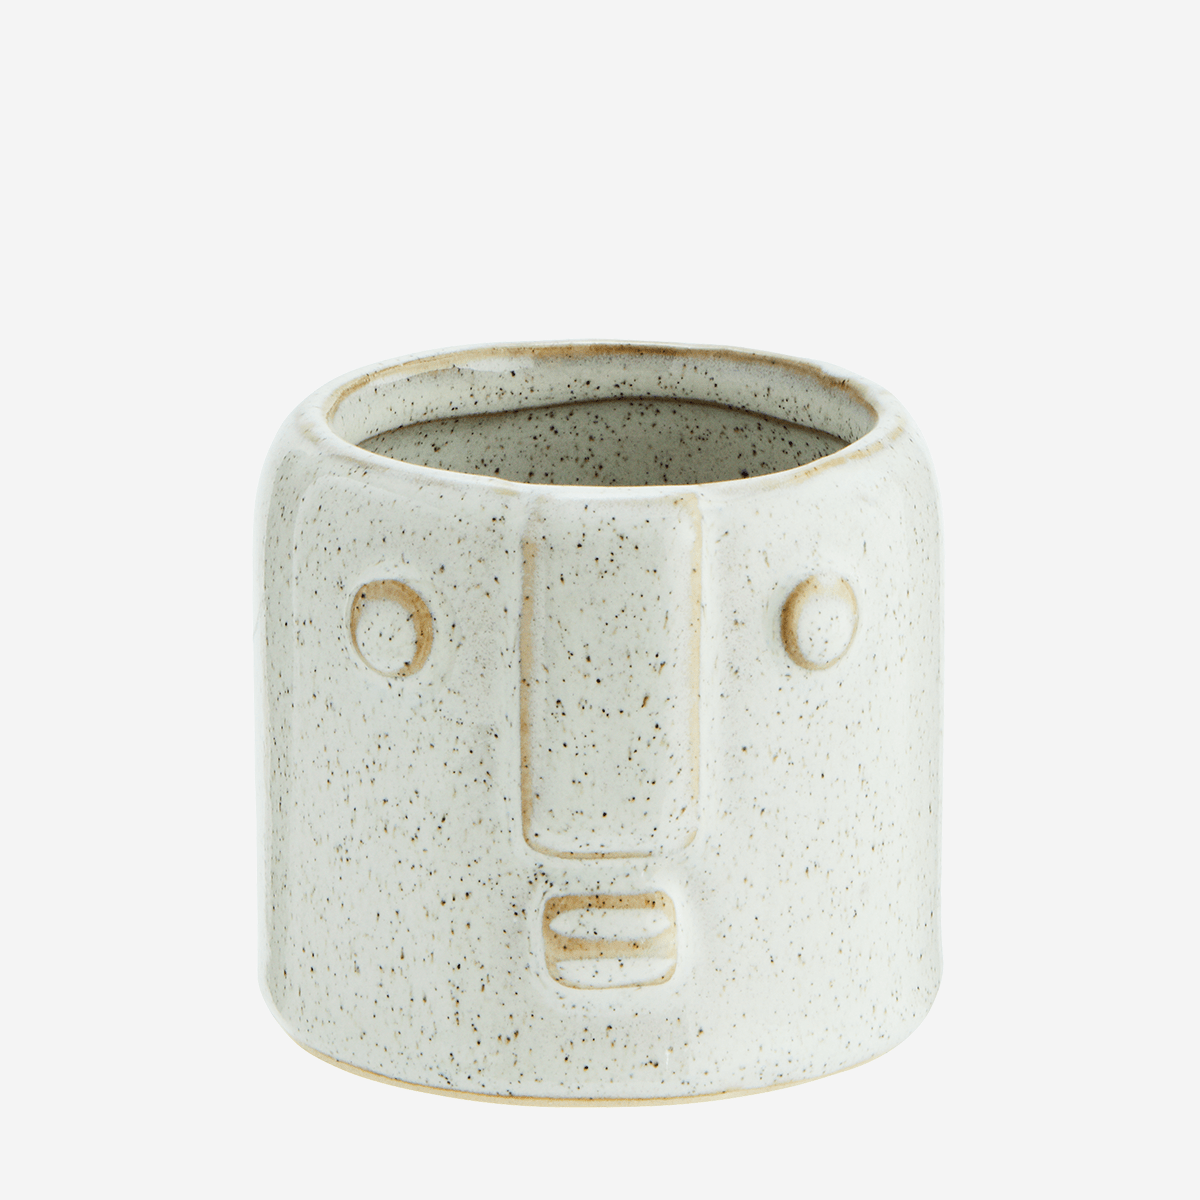 Off White Stoneware Pot with Face Imprint